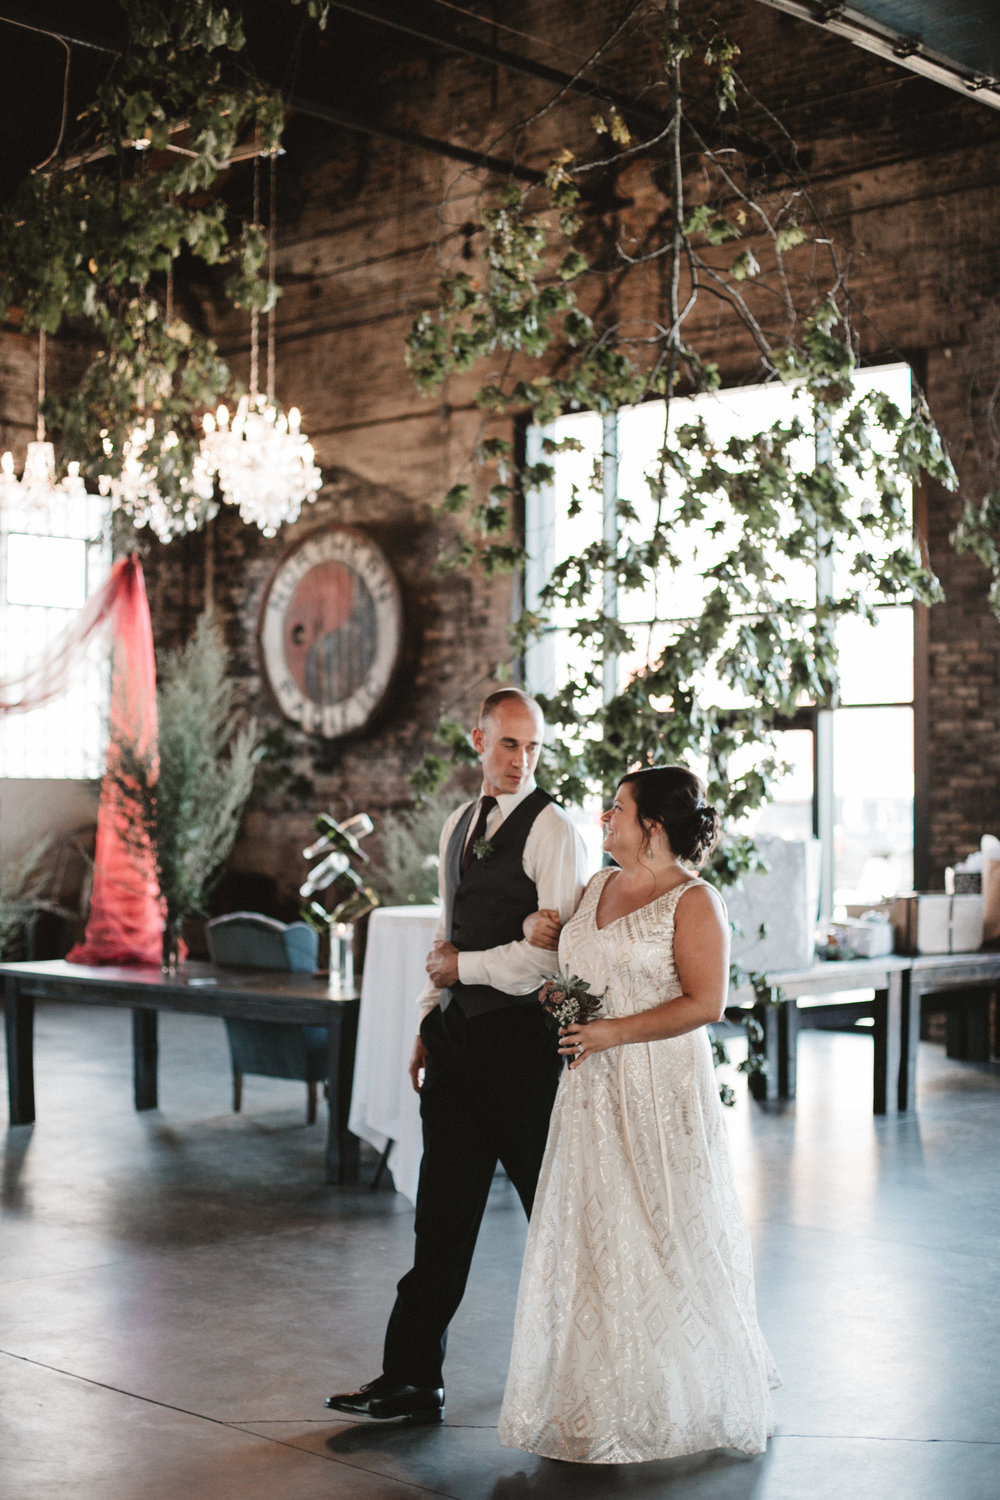 Eclectic industrial chic wedding ceremony at the NP Event Space. Photography by Britt DeZeeuw.